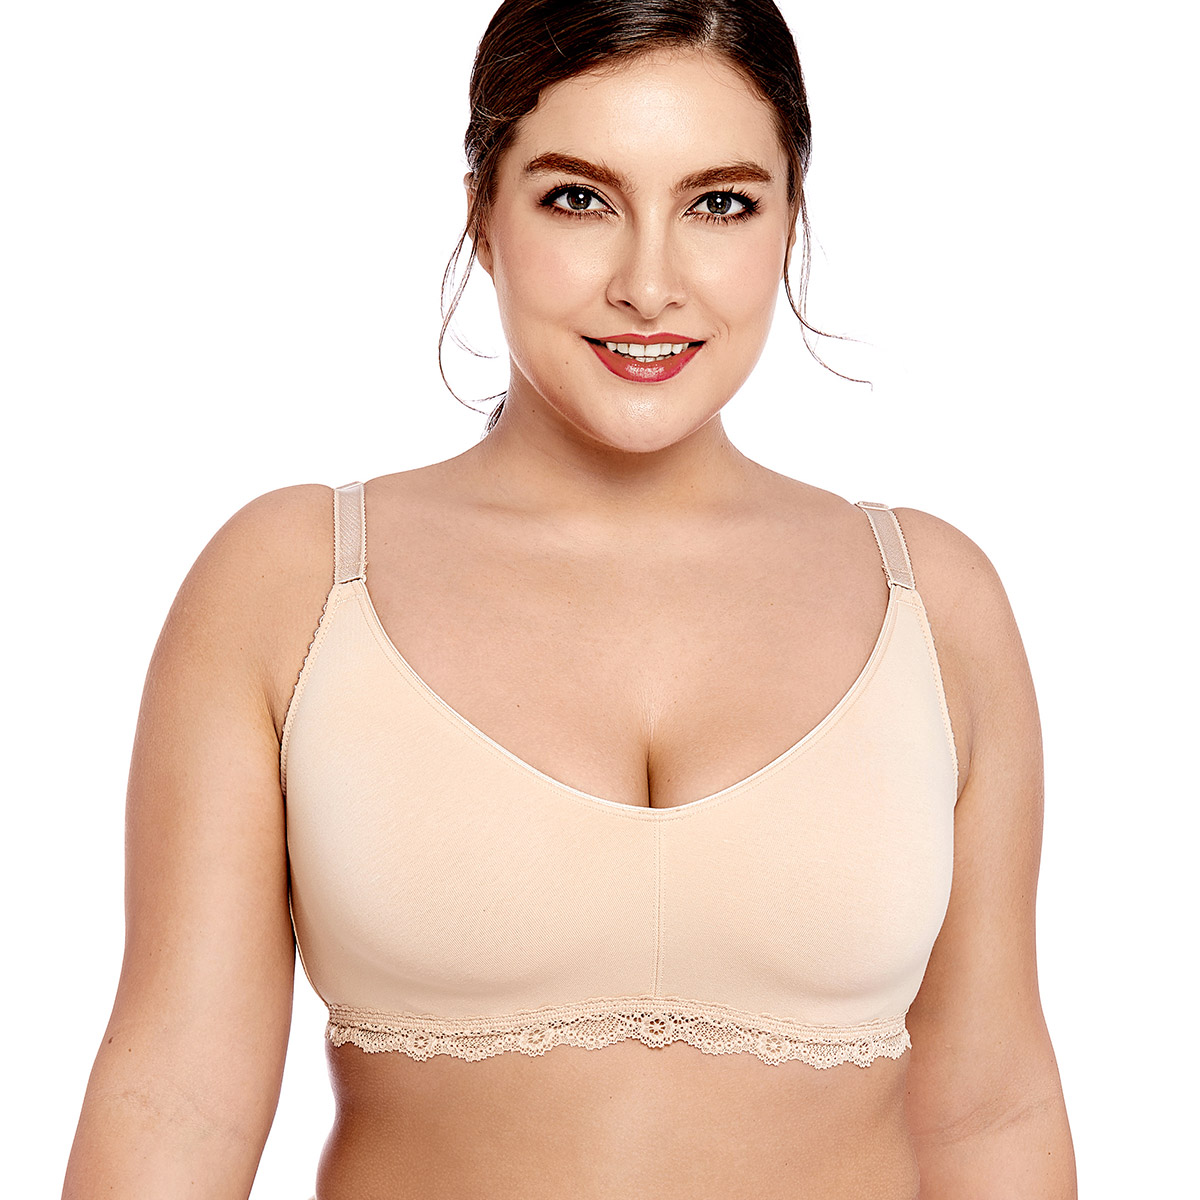 86d63c84fe700 Women s Lace Soft Wirefree Non Padded Full Coverage Cotton Bra Plus Size 34-46  B C D